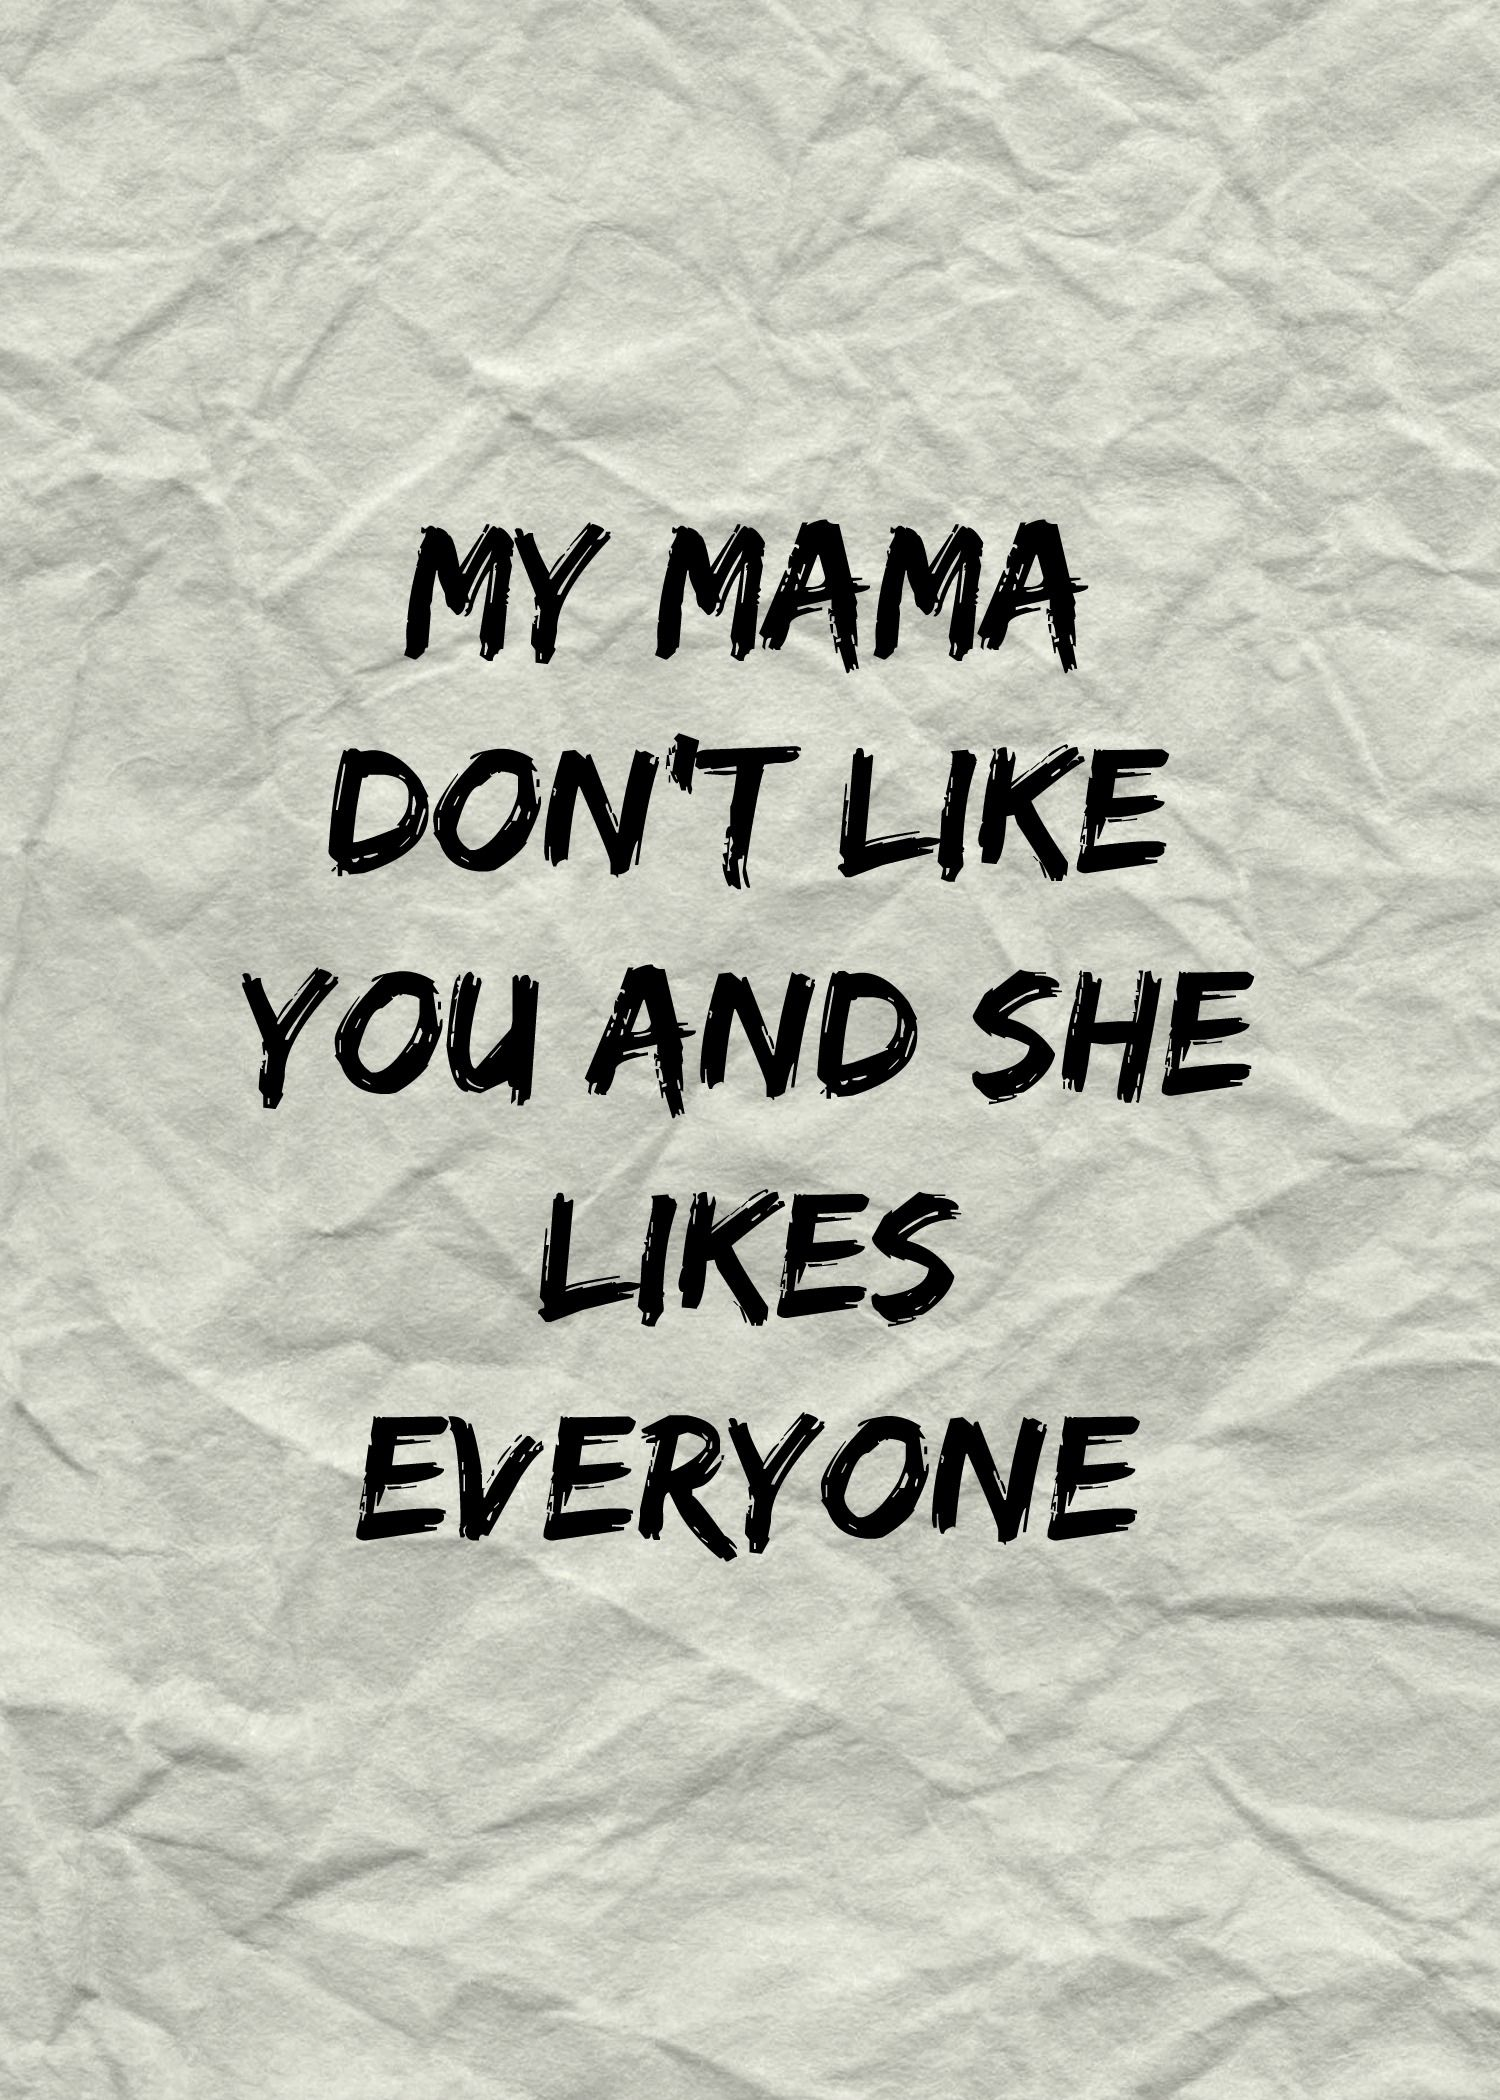 Justin bieber tumblr lyrics live quotes - My Mama Don T Like You And She Likes Everyone Love Yourself Justin Bieber Ed